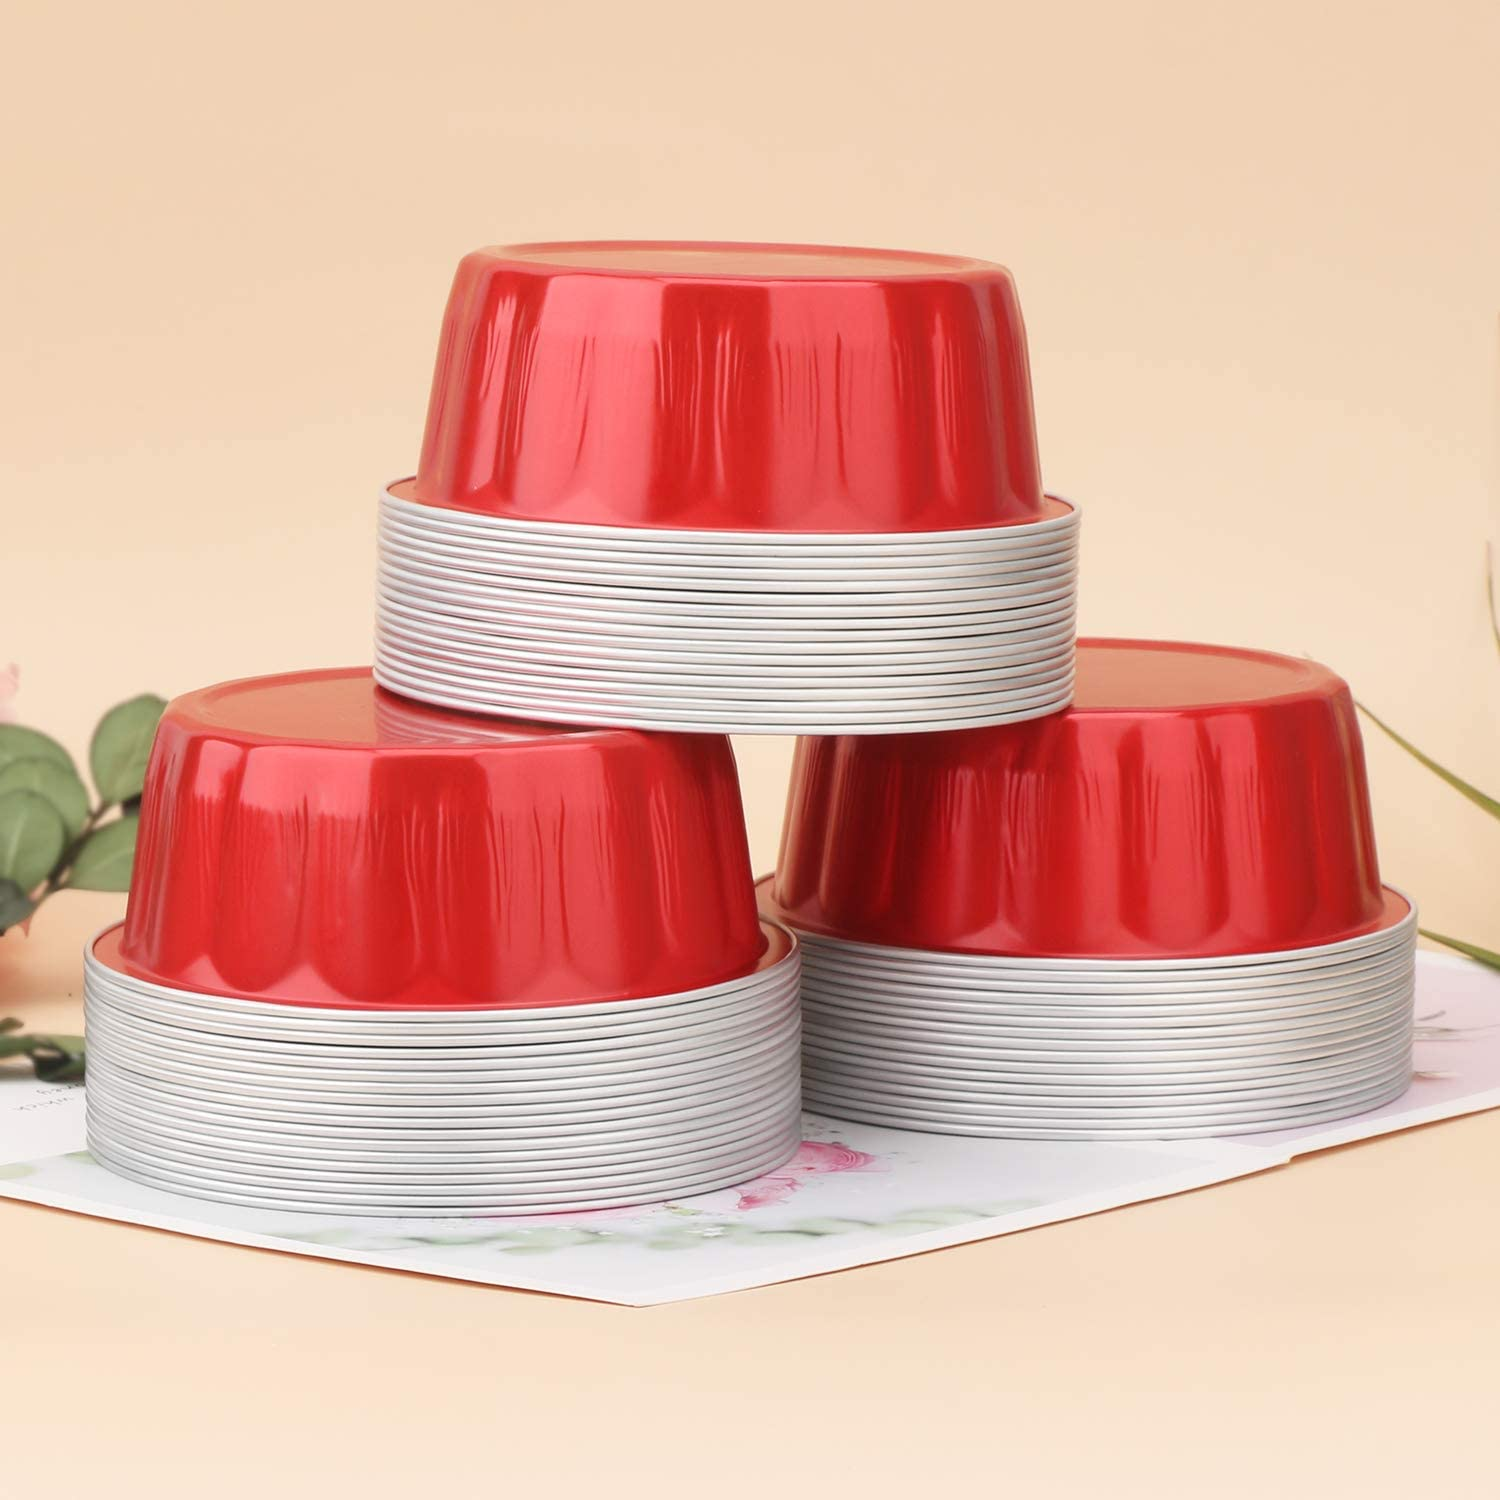 Red Beasea 8 oz 3.9 Bake Utility Ramekin Cup Souffle Cup Muffin Cupcake Baking Cup Mini Pudding Cups for Party Wedding Birthday Disposable Aluminum Foil Cups 100 Pack